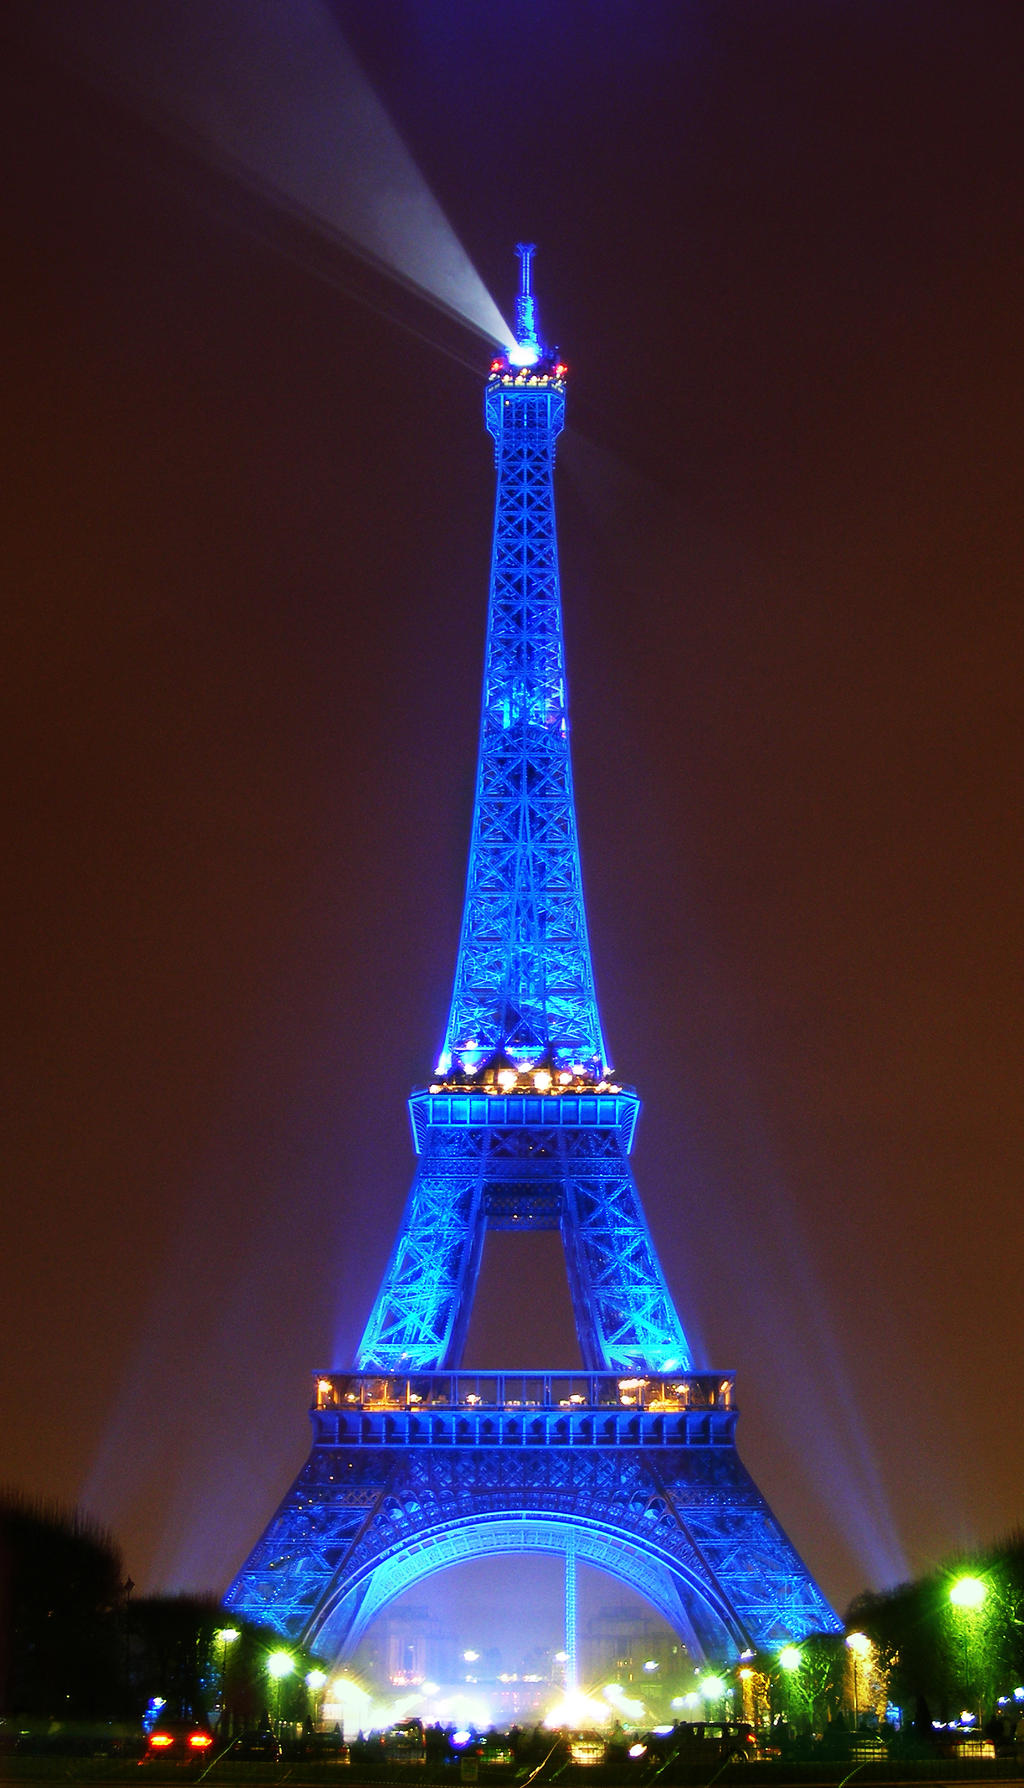 paris torre eifel by efrainlopra on deviantart